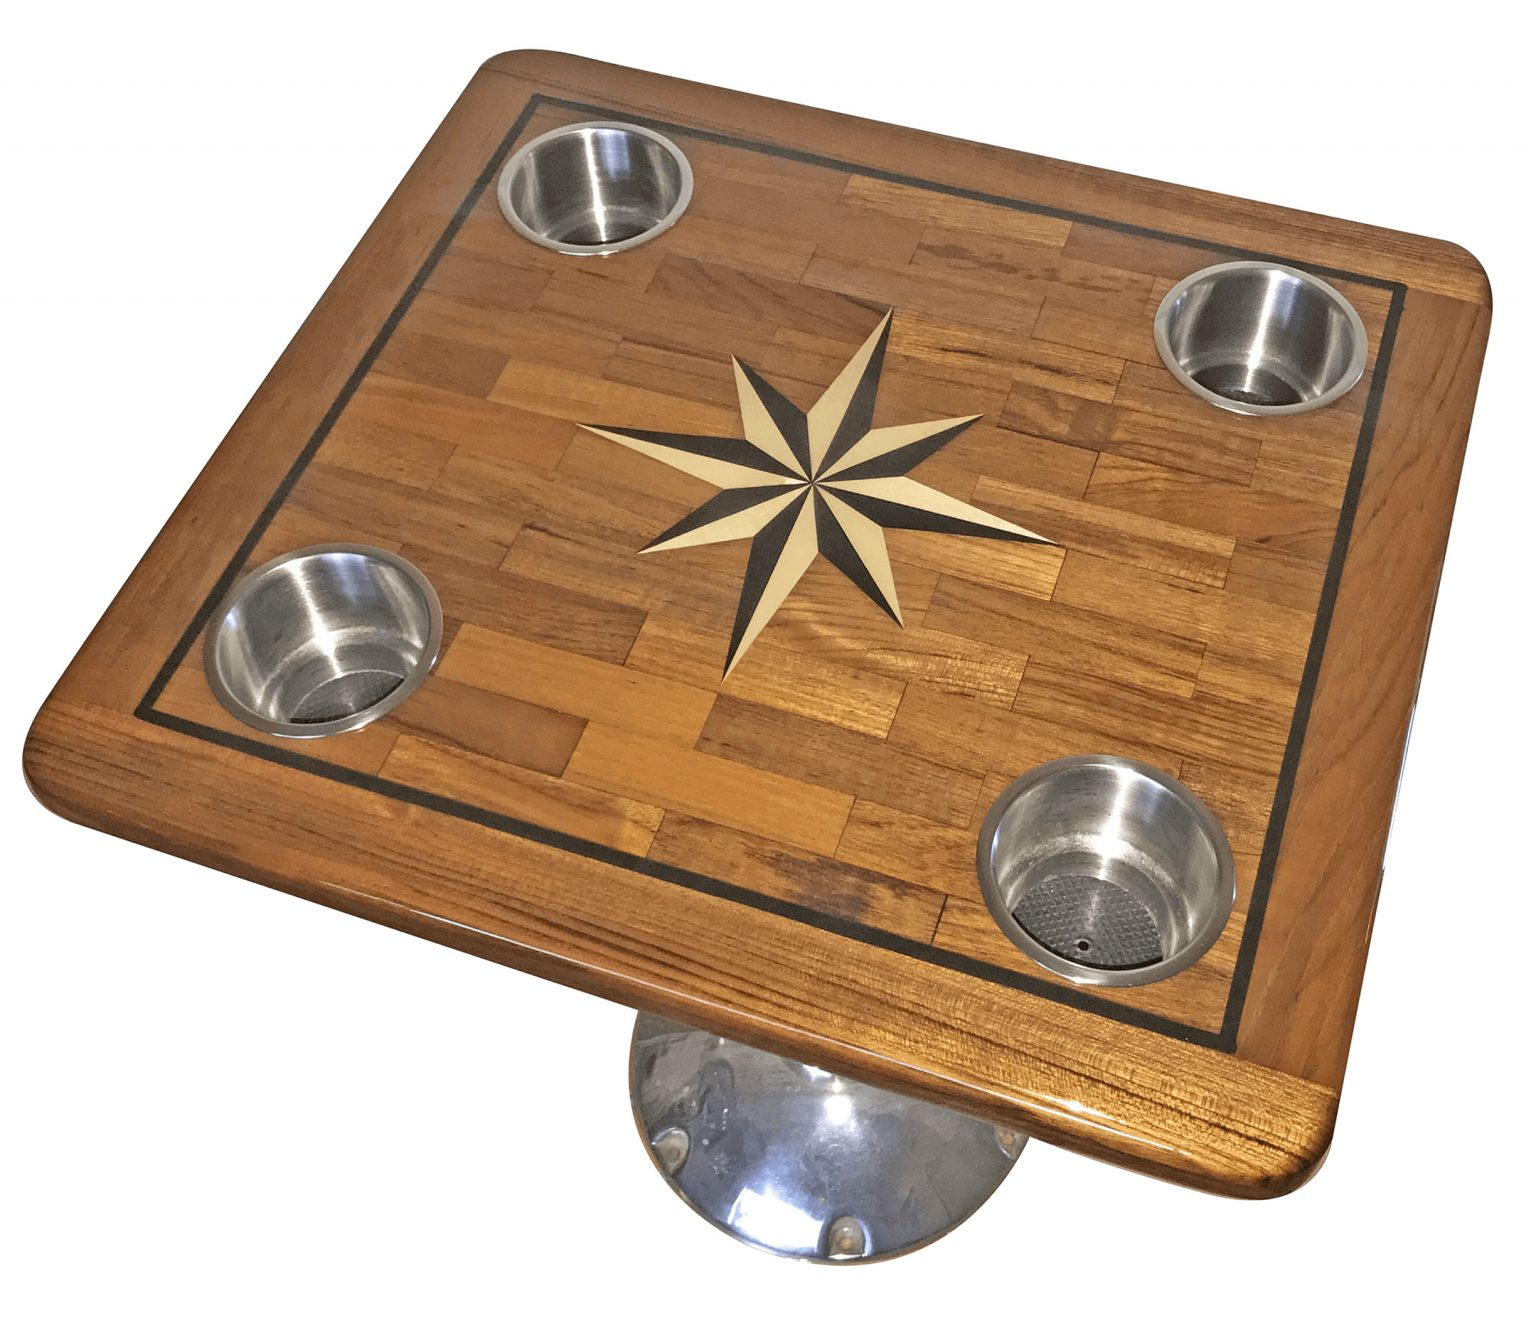 Et14-square-teak-table-with-stainless-cupholders-and-star-4-1536x1318